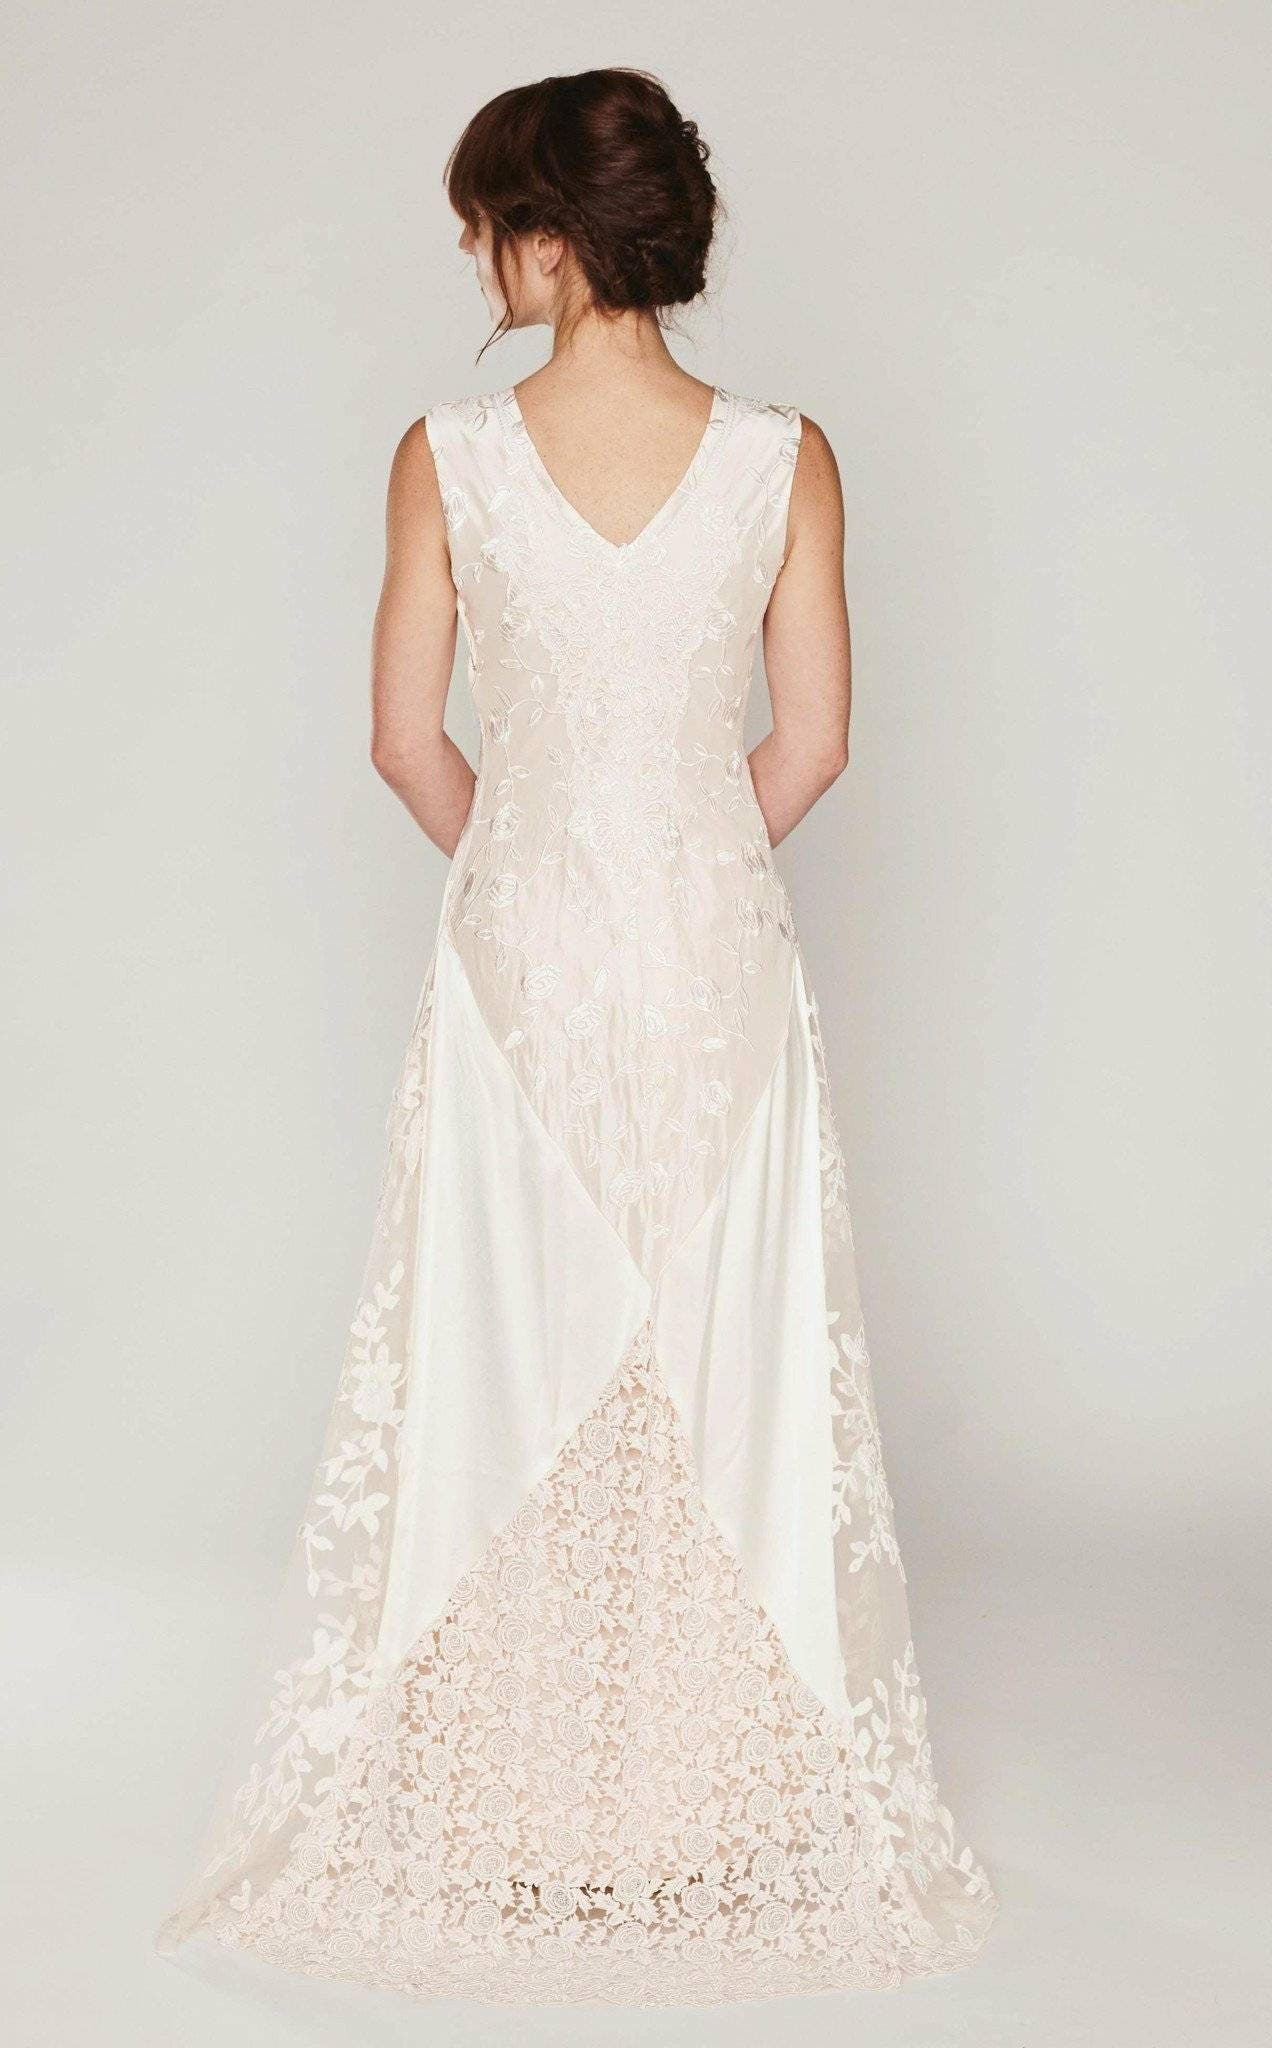 Silk boho wedding dress bias cut bridal gown lace collage zoom ombrellifo Image collections